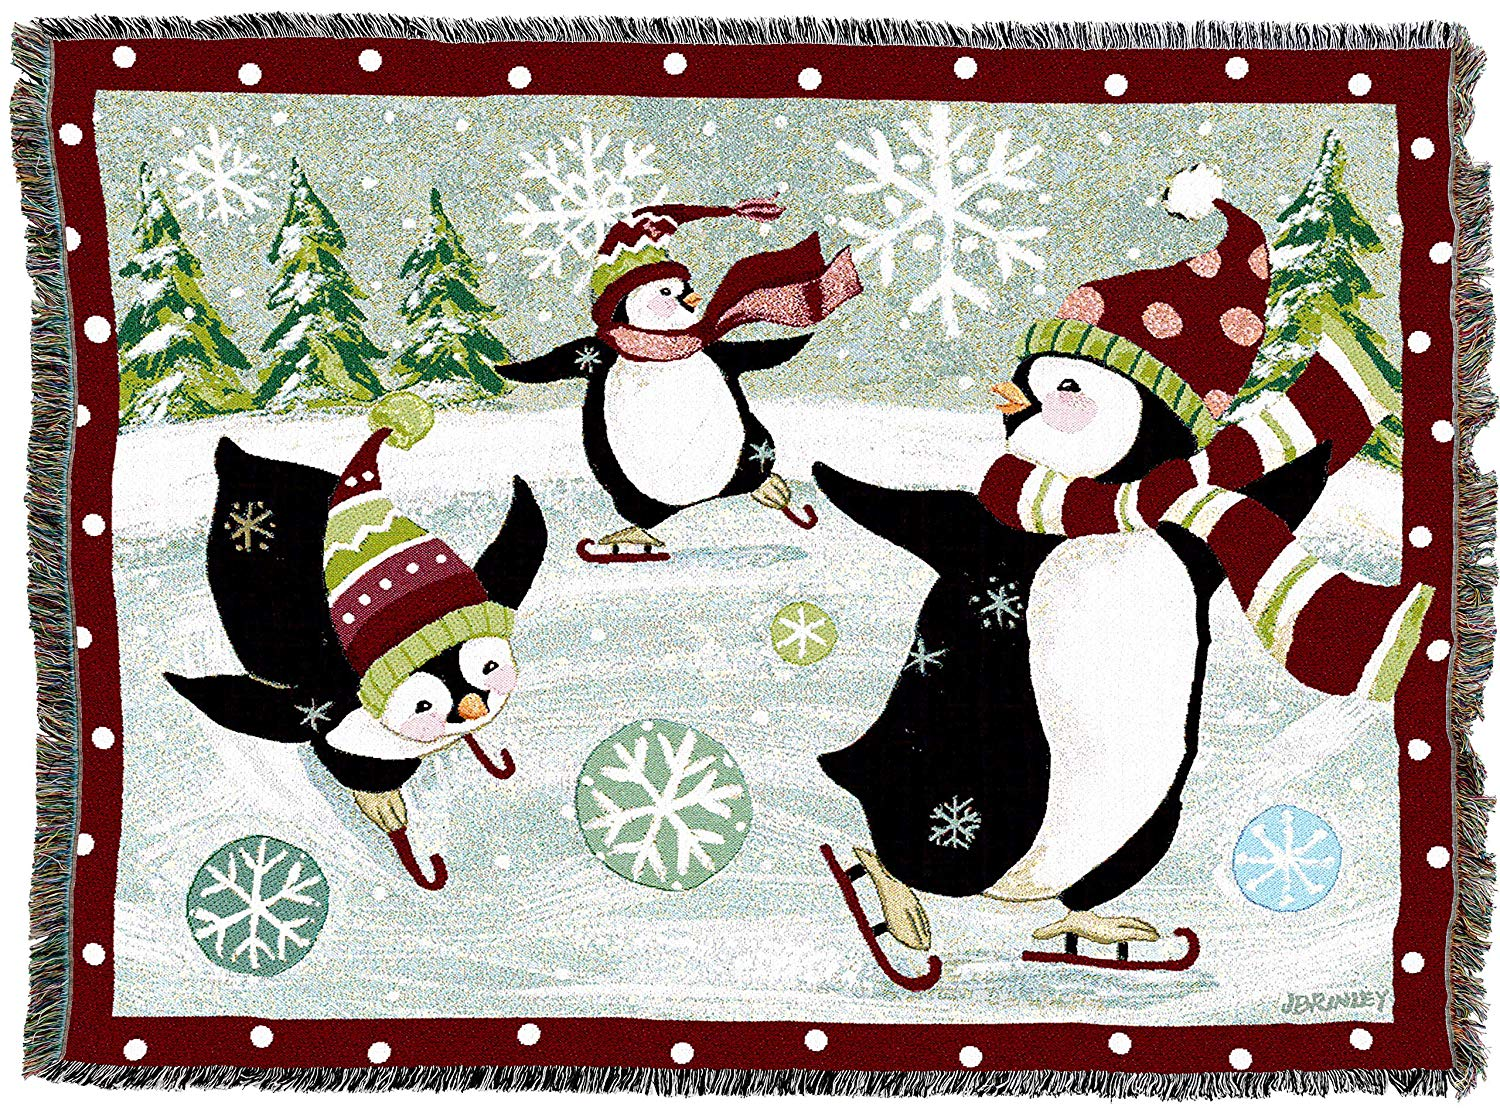 Whimsical Skating Penguins Woven Tapestry Throw Blanket with Fringe Cotton USA 72x54